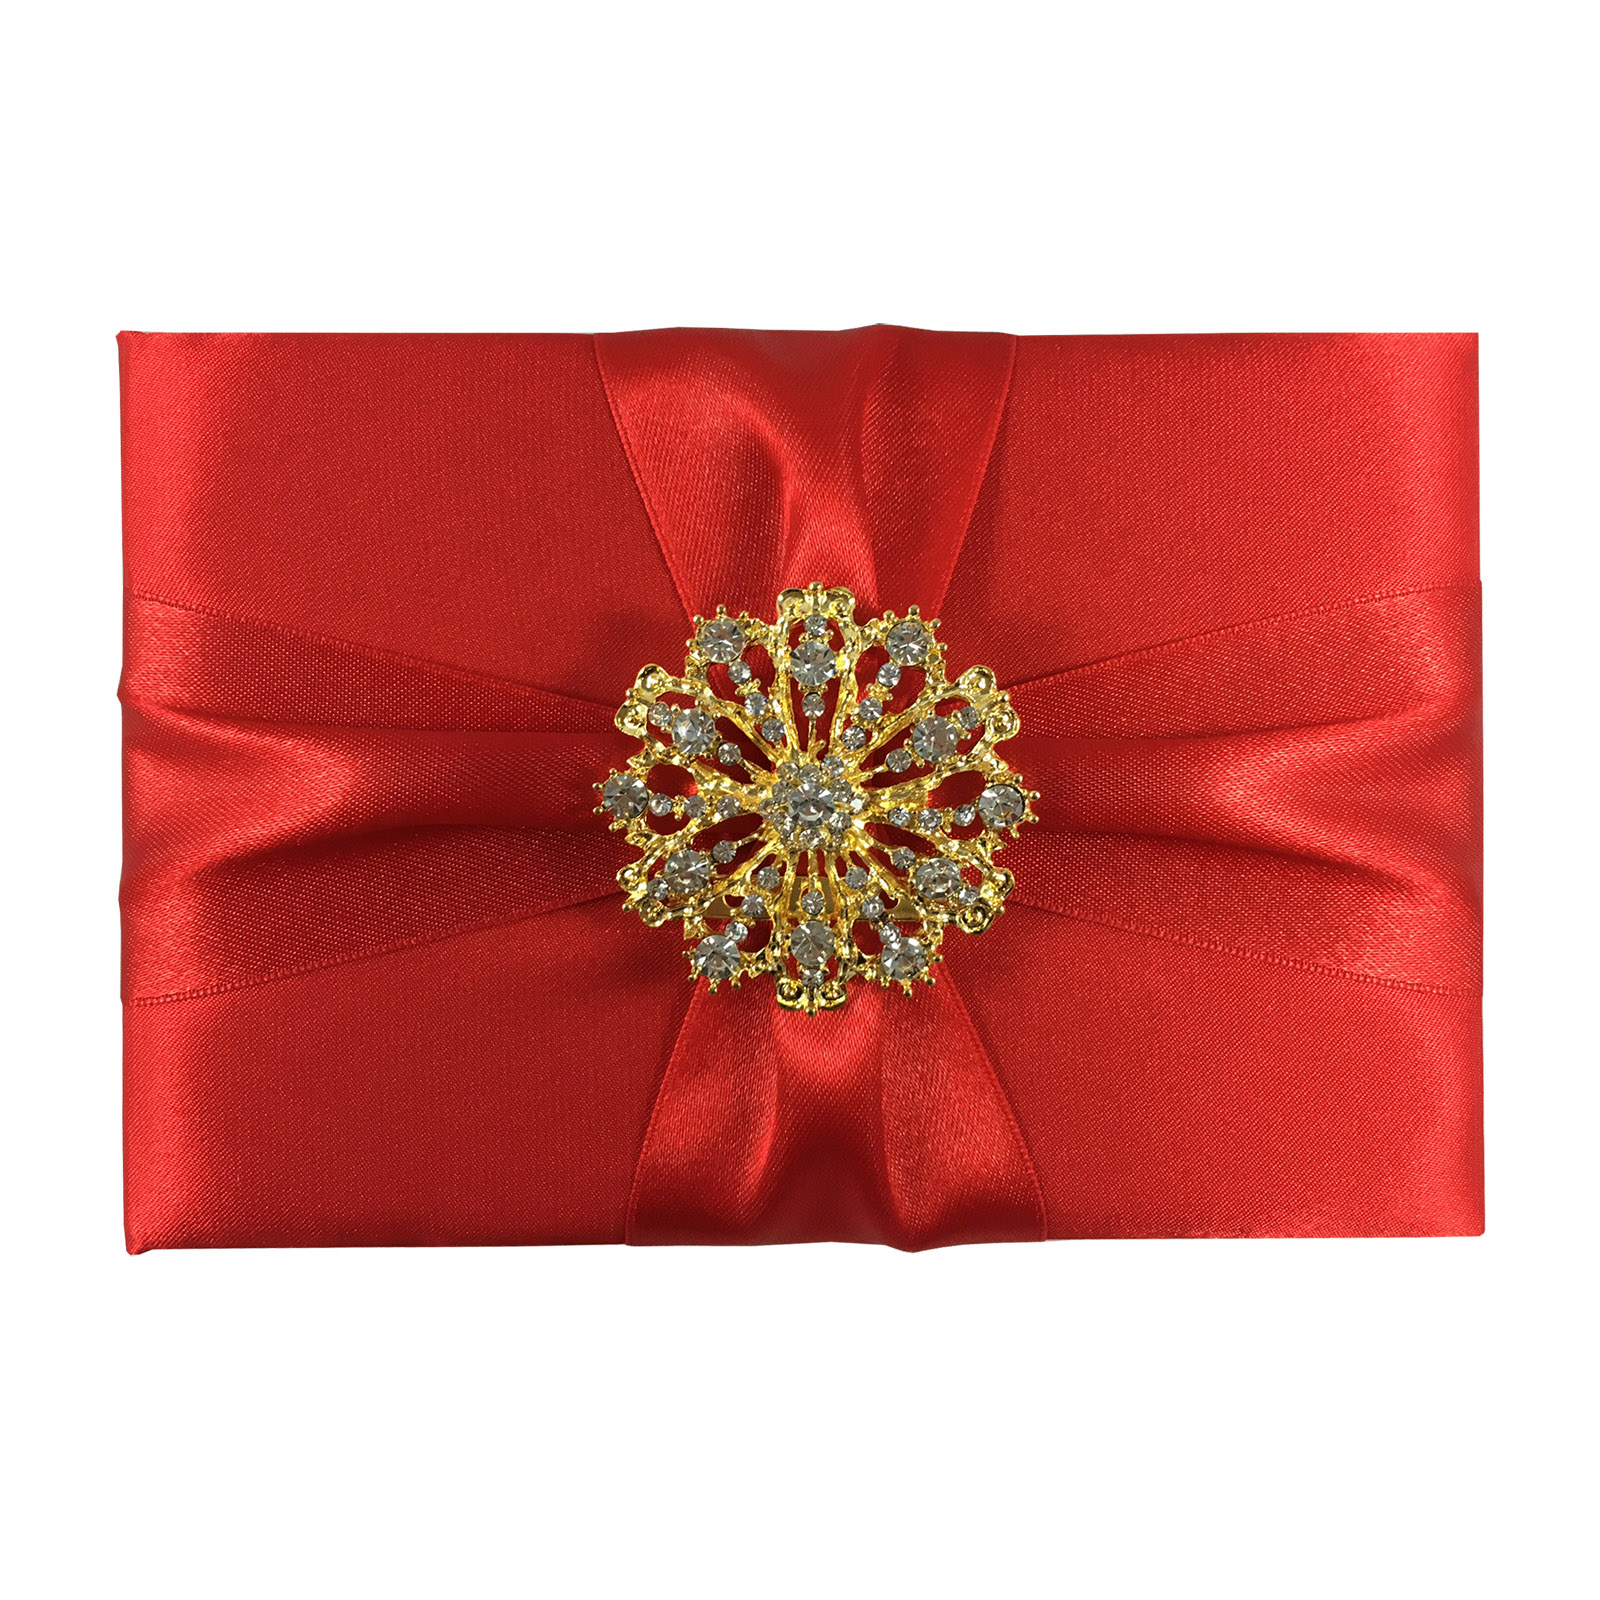 Luxury red silk folder with crystal brooch for luxury wedding and formal event invitations